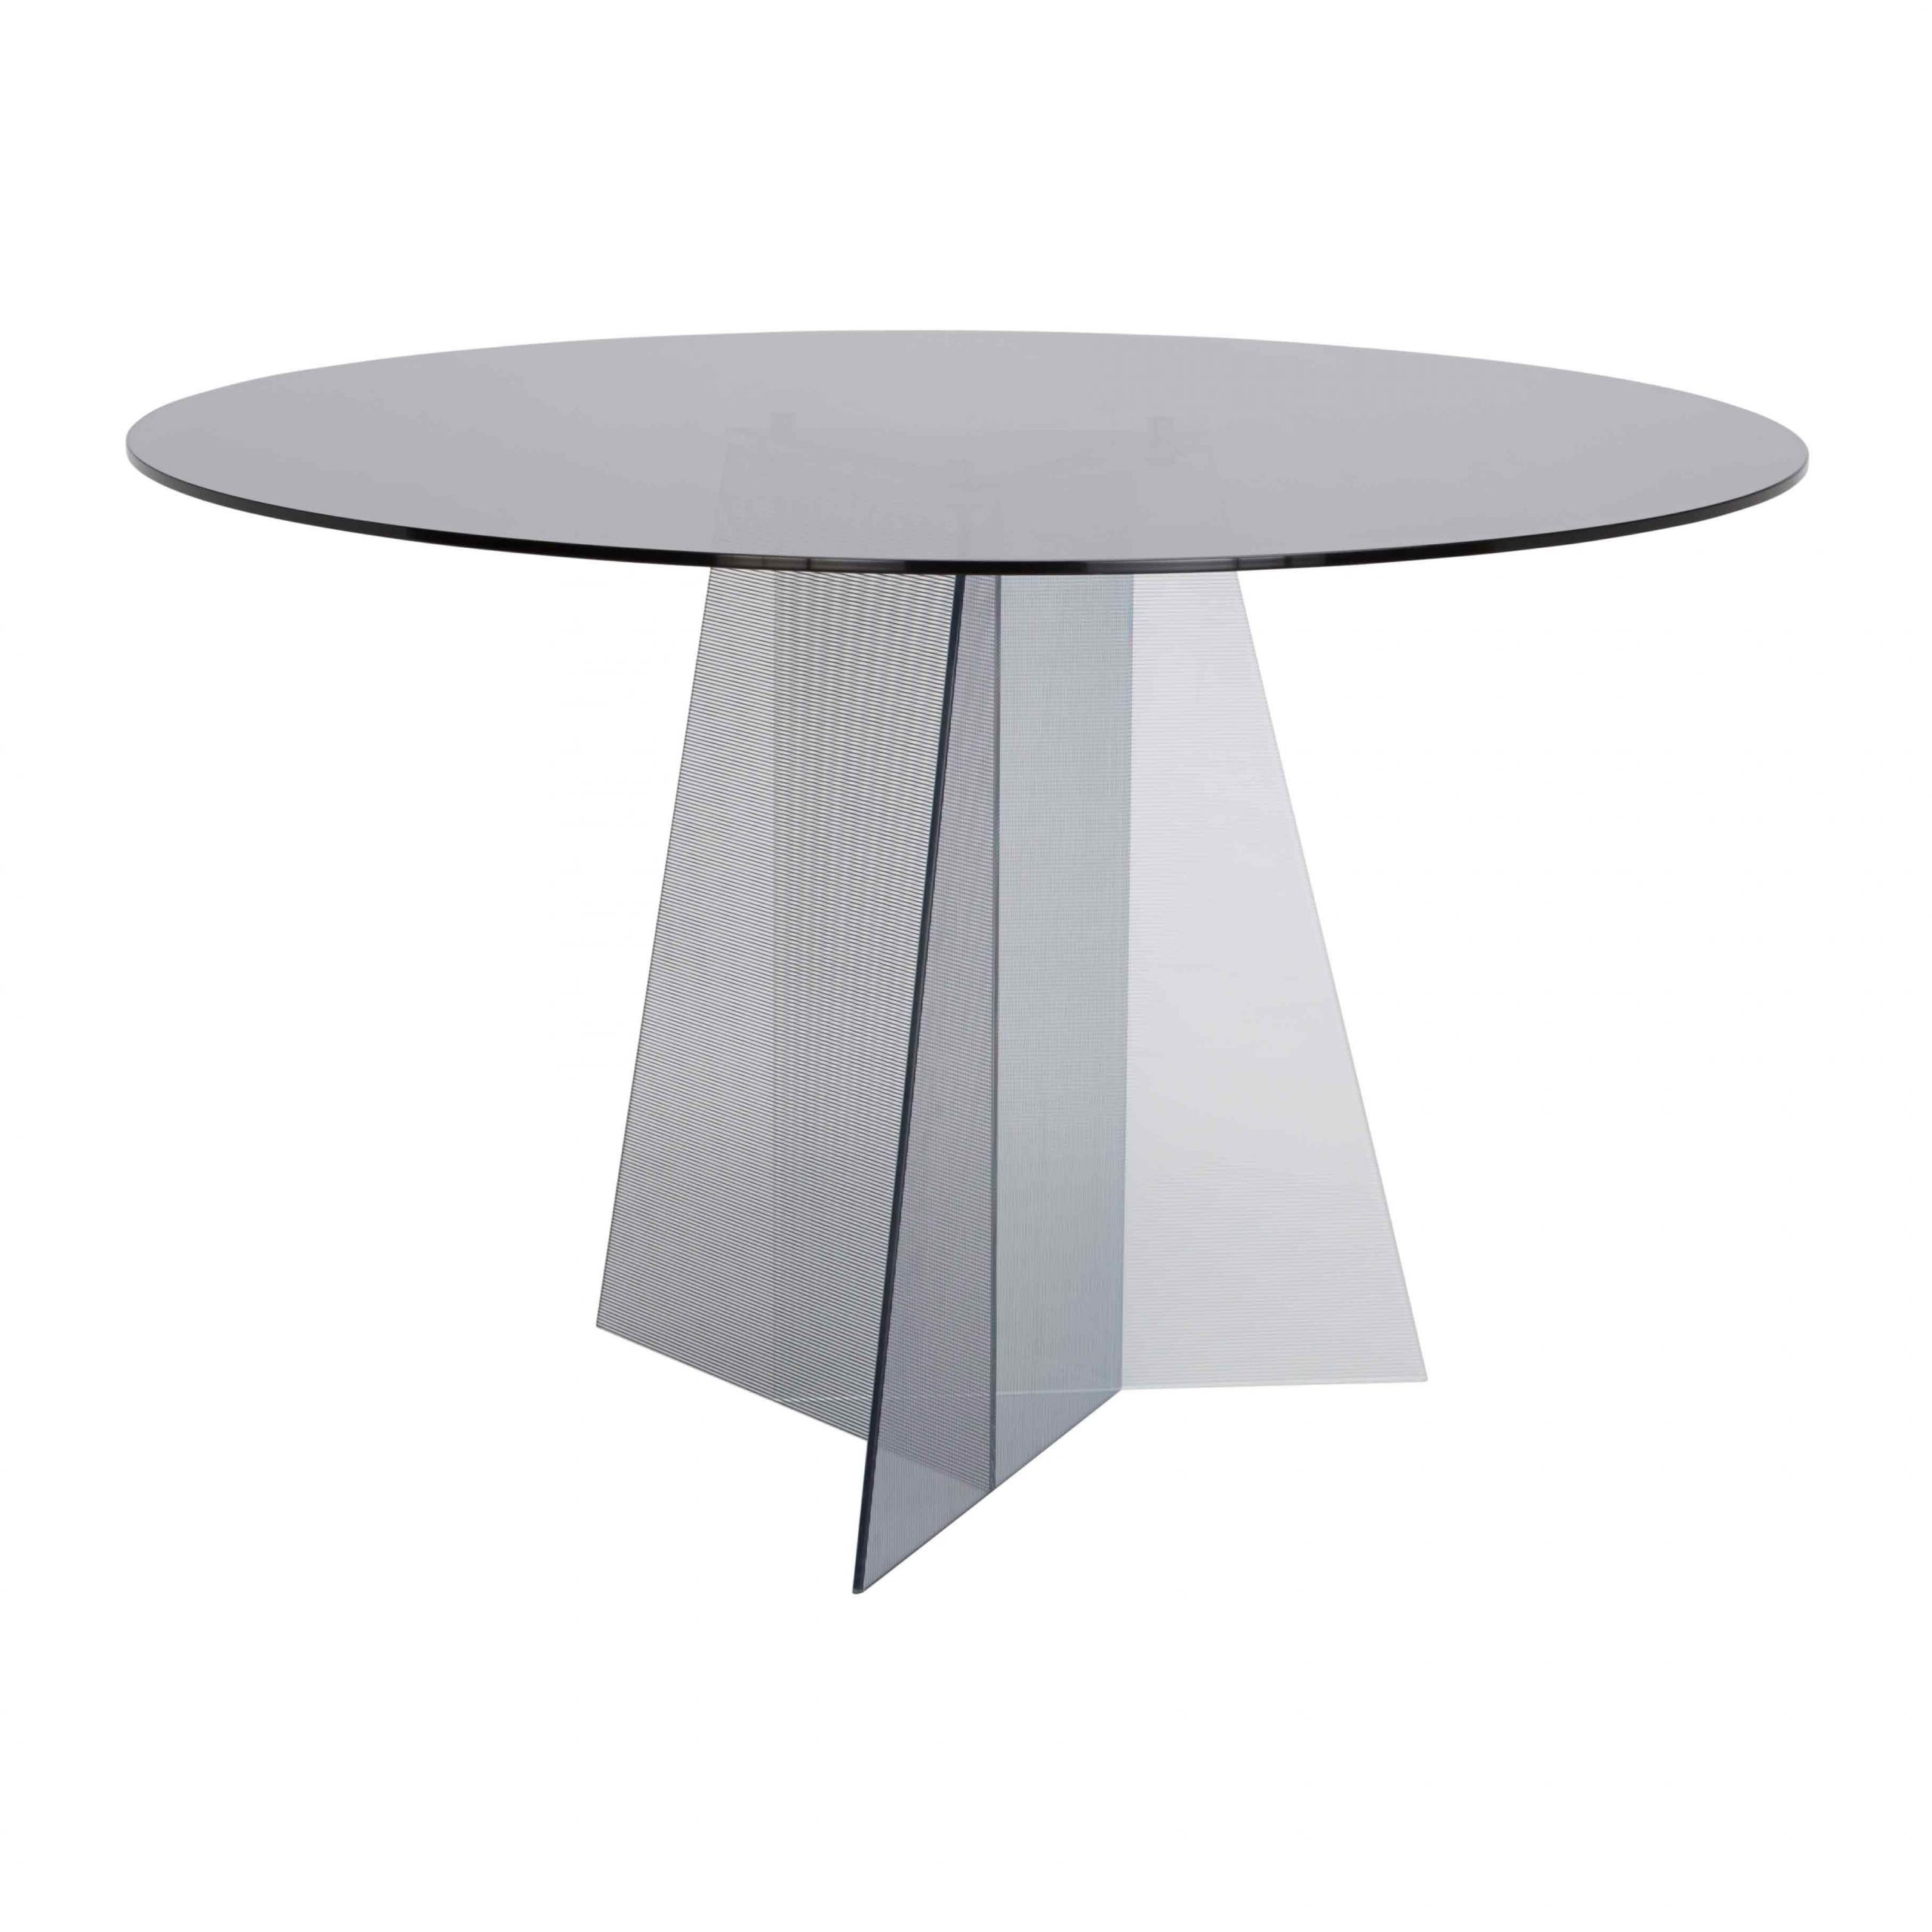 Glastisch I Glass Table I New Tom Dixon Collection 2014 I Pertaining To Latest Dixon 29'' Dining Tables (View 9 of 15)